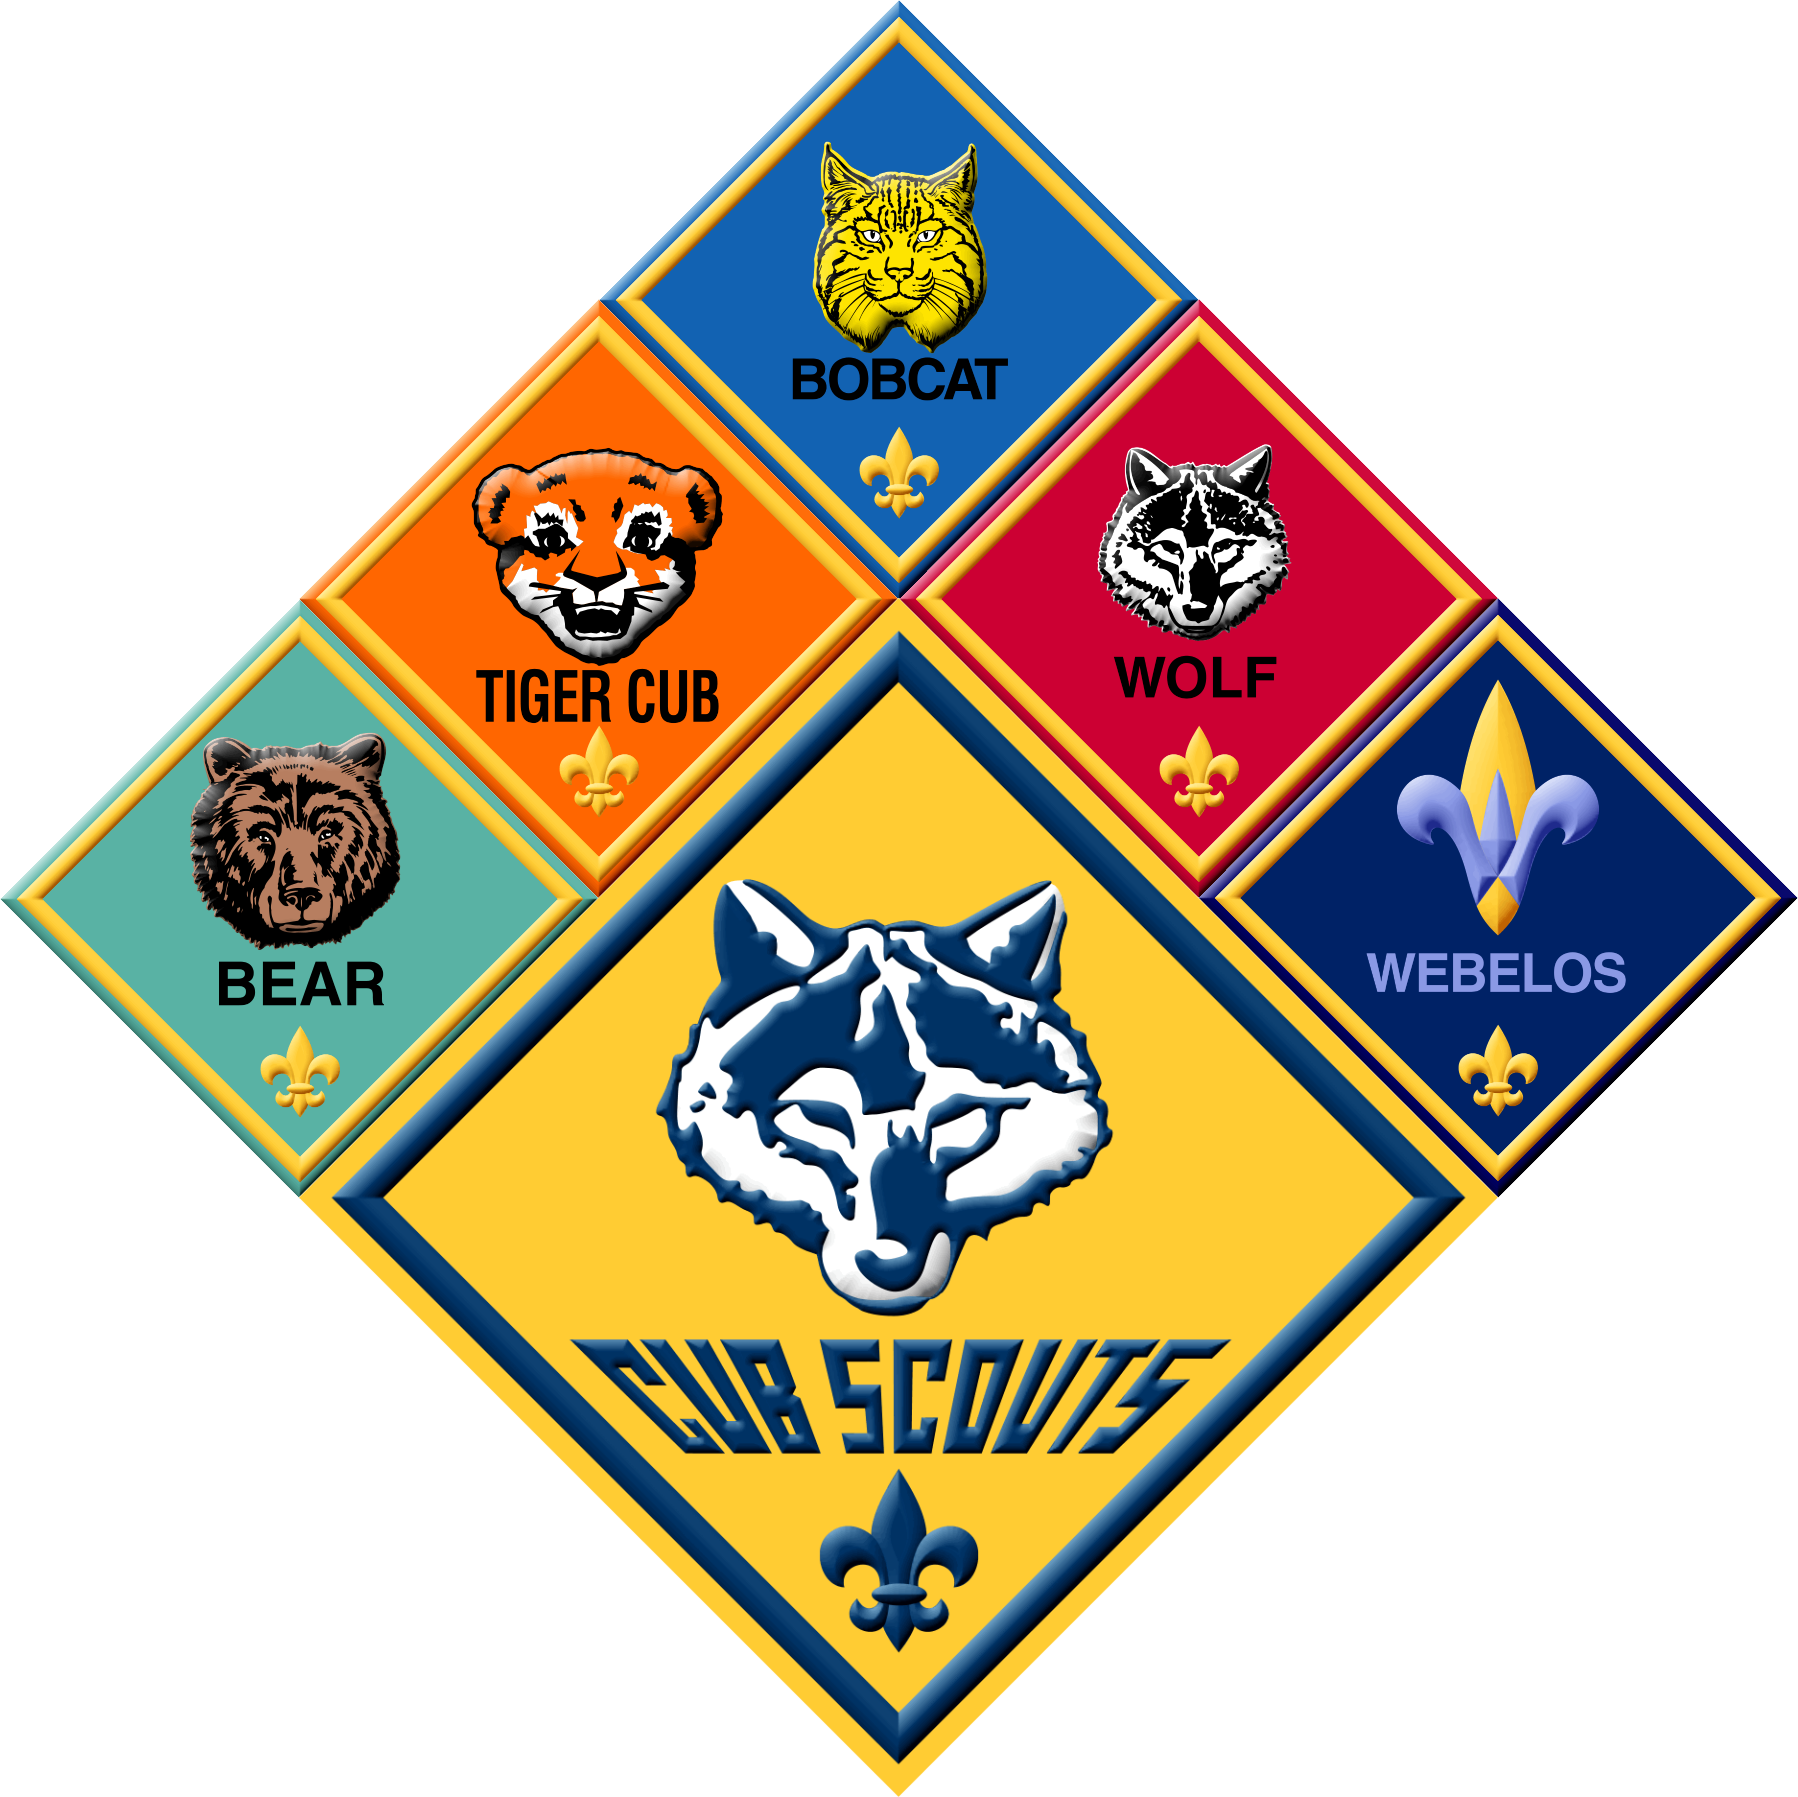 Code transparent scout. Pack links cubscout